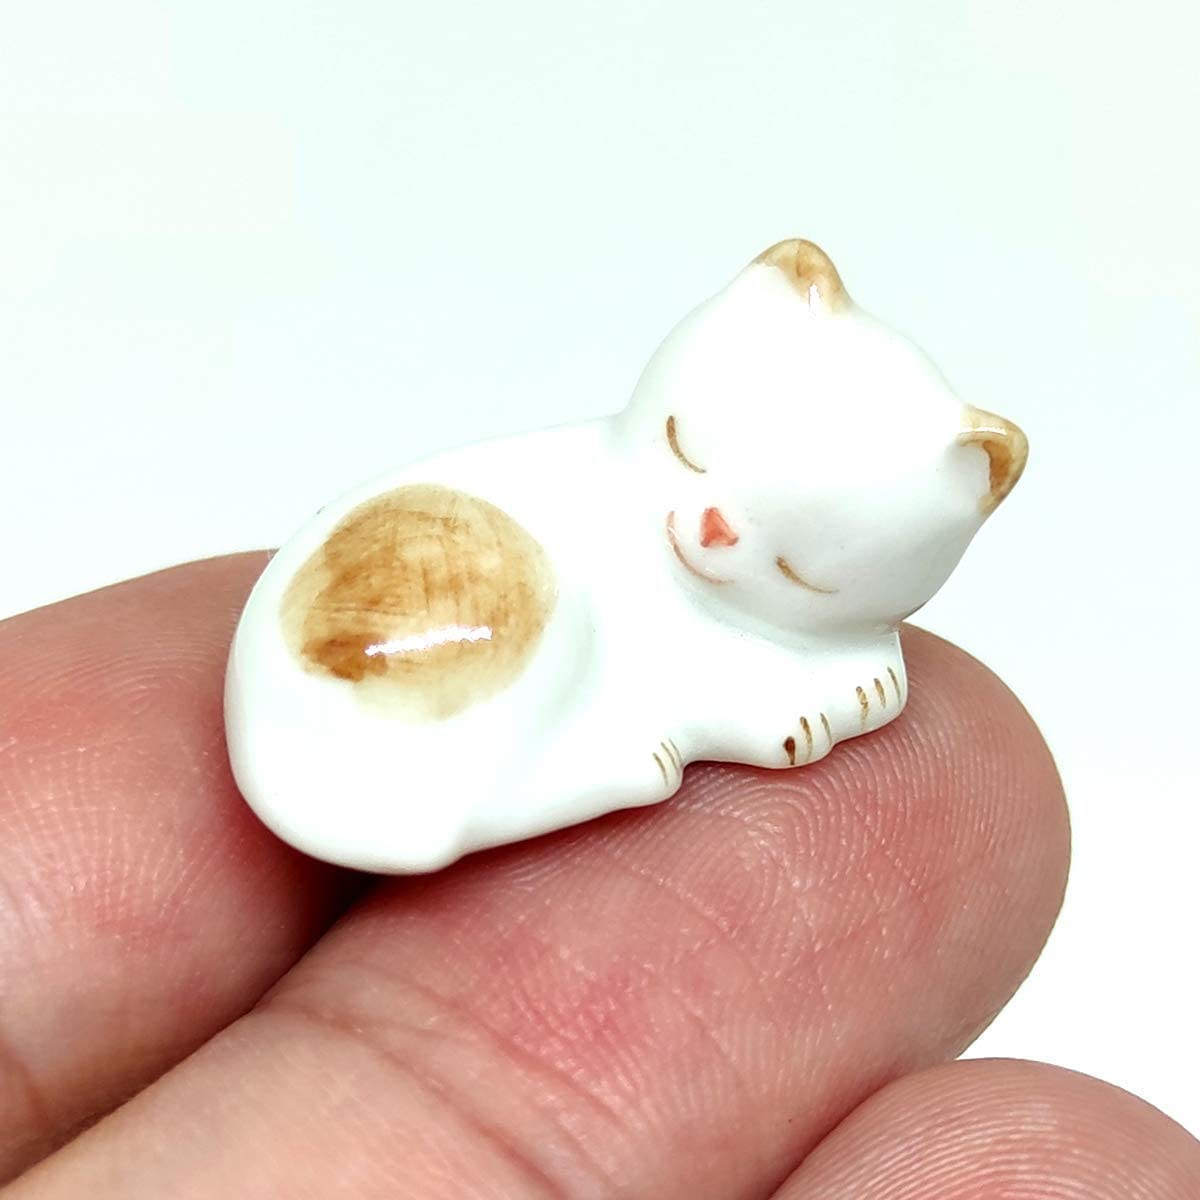 SSJSHOP Kitten Sleeping Cat Micro Tiny Dollhouse Figurines Ceramic Hand Painted Animals Collectible Small Gift Home Garden Decor,